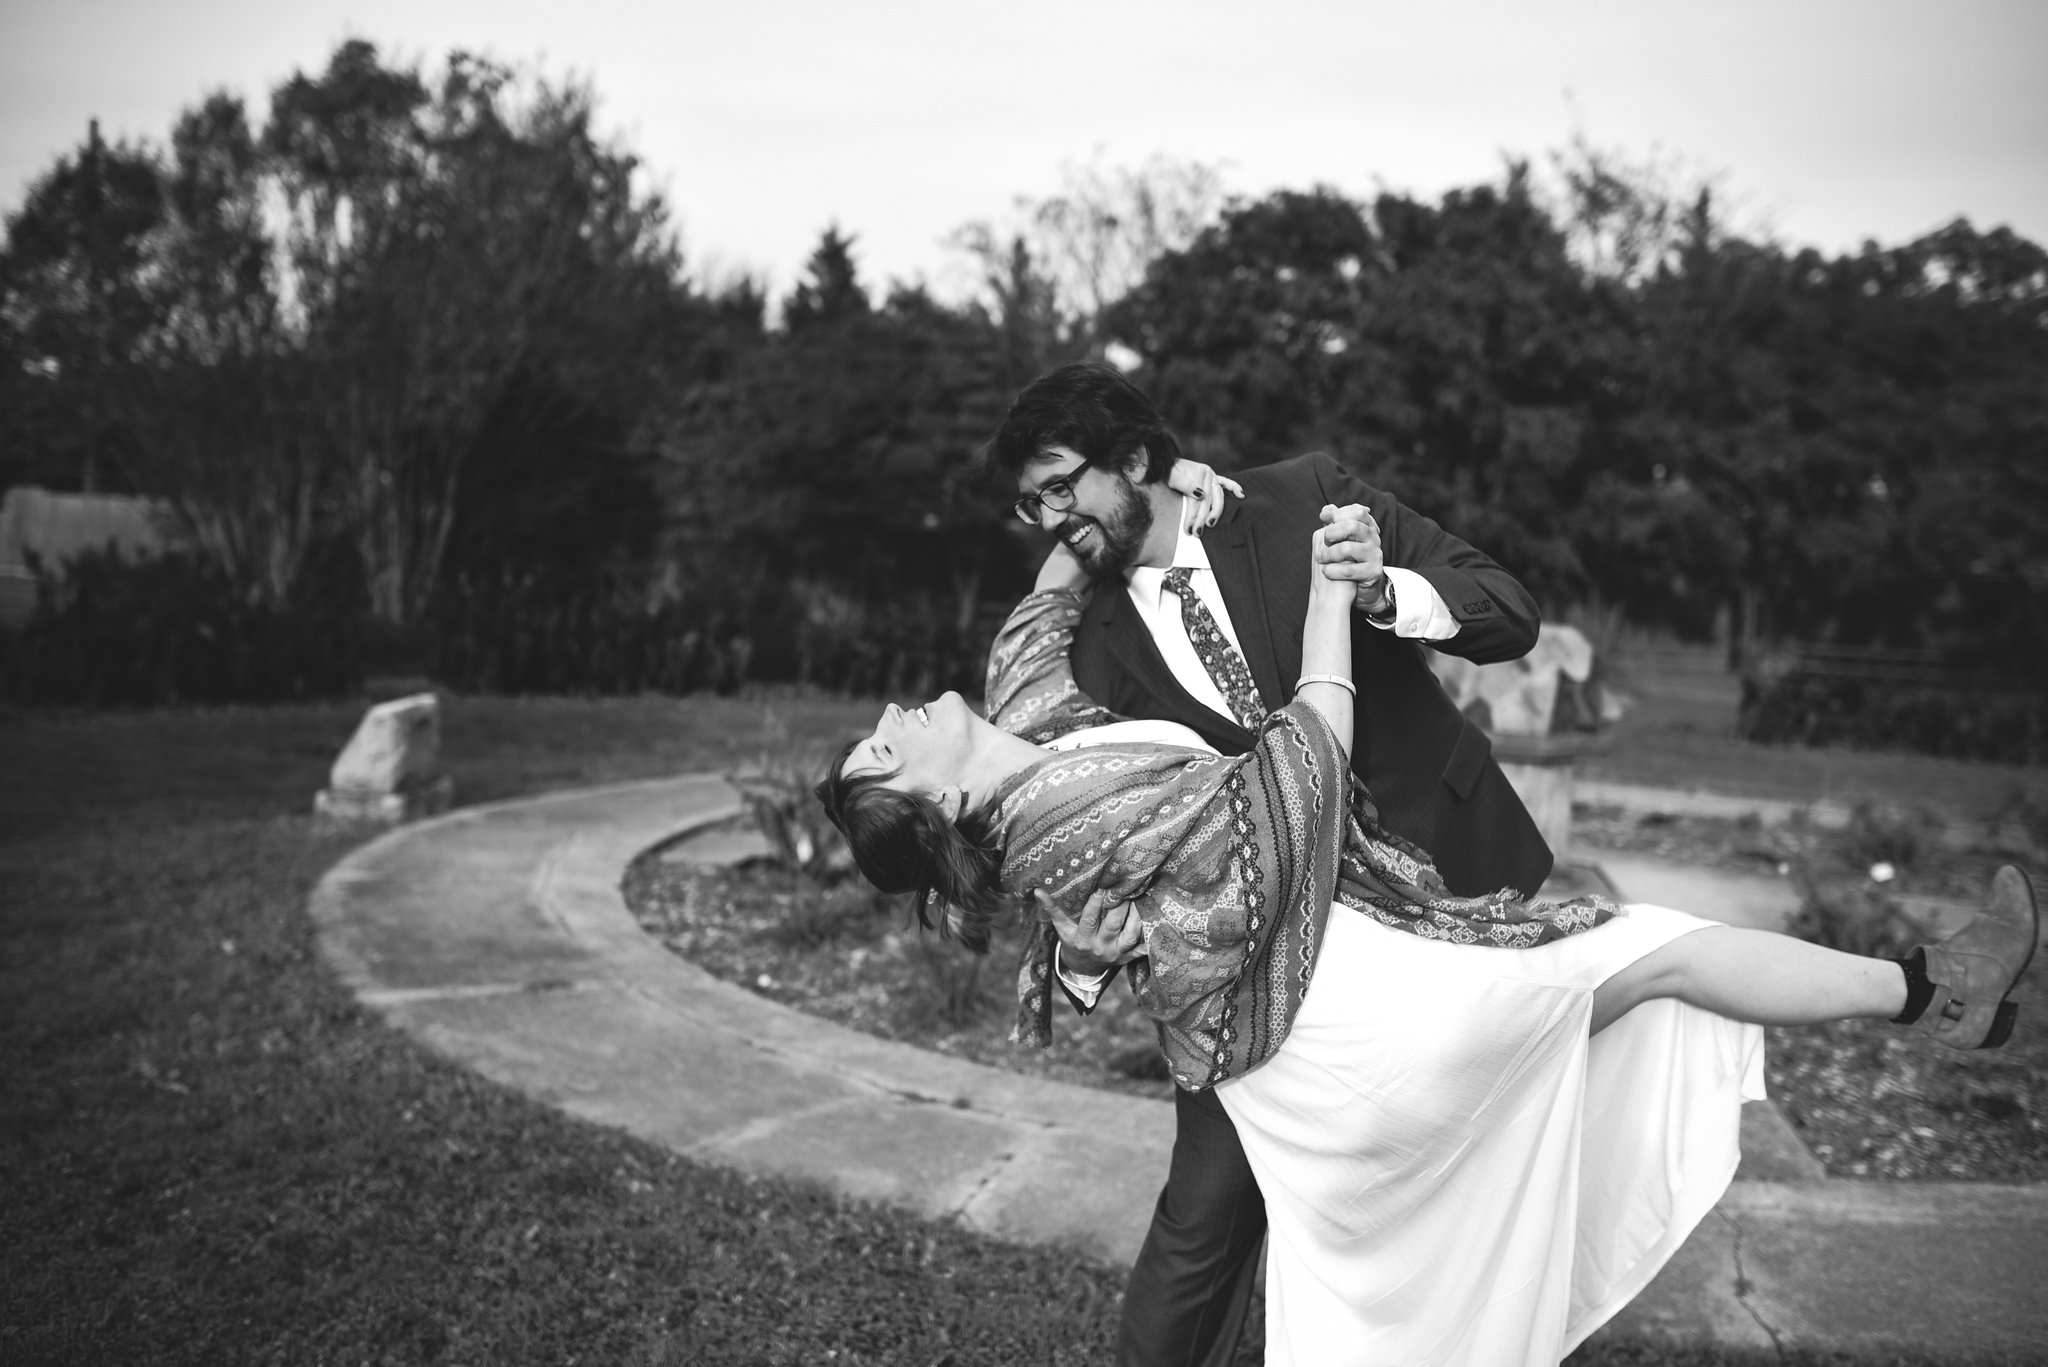 Rawlings Conservatory, Druid Hill Park, Intimate Wedding, Nature, Baltimore Wedding Photographer, Romantic, Classic, Groom Dipping Bride Outside, Black and White Photo, Couple Dancing